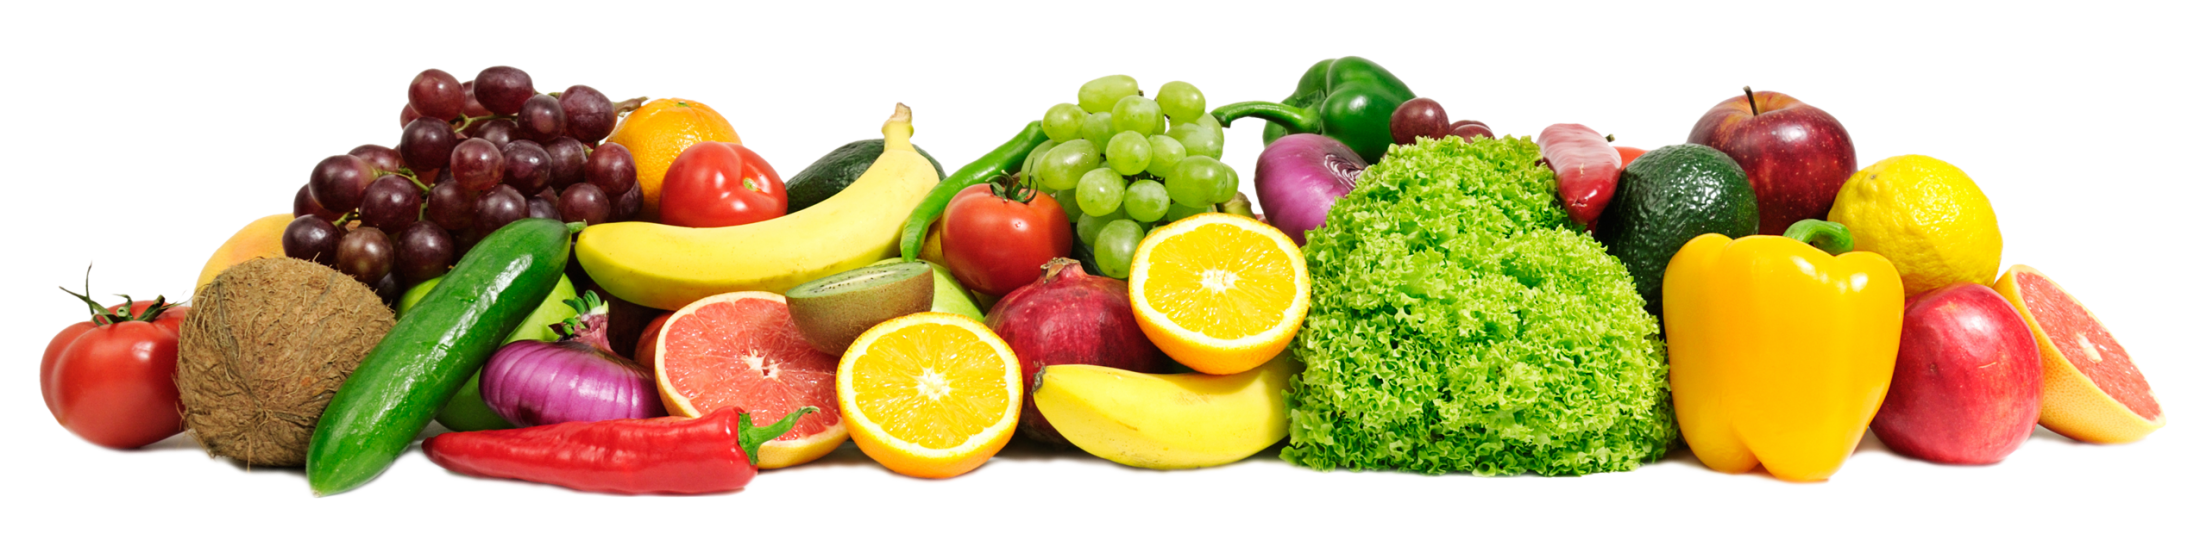 Blog about super-healthy food